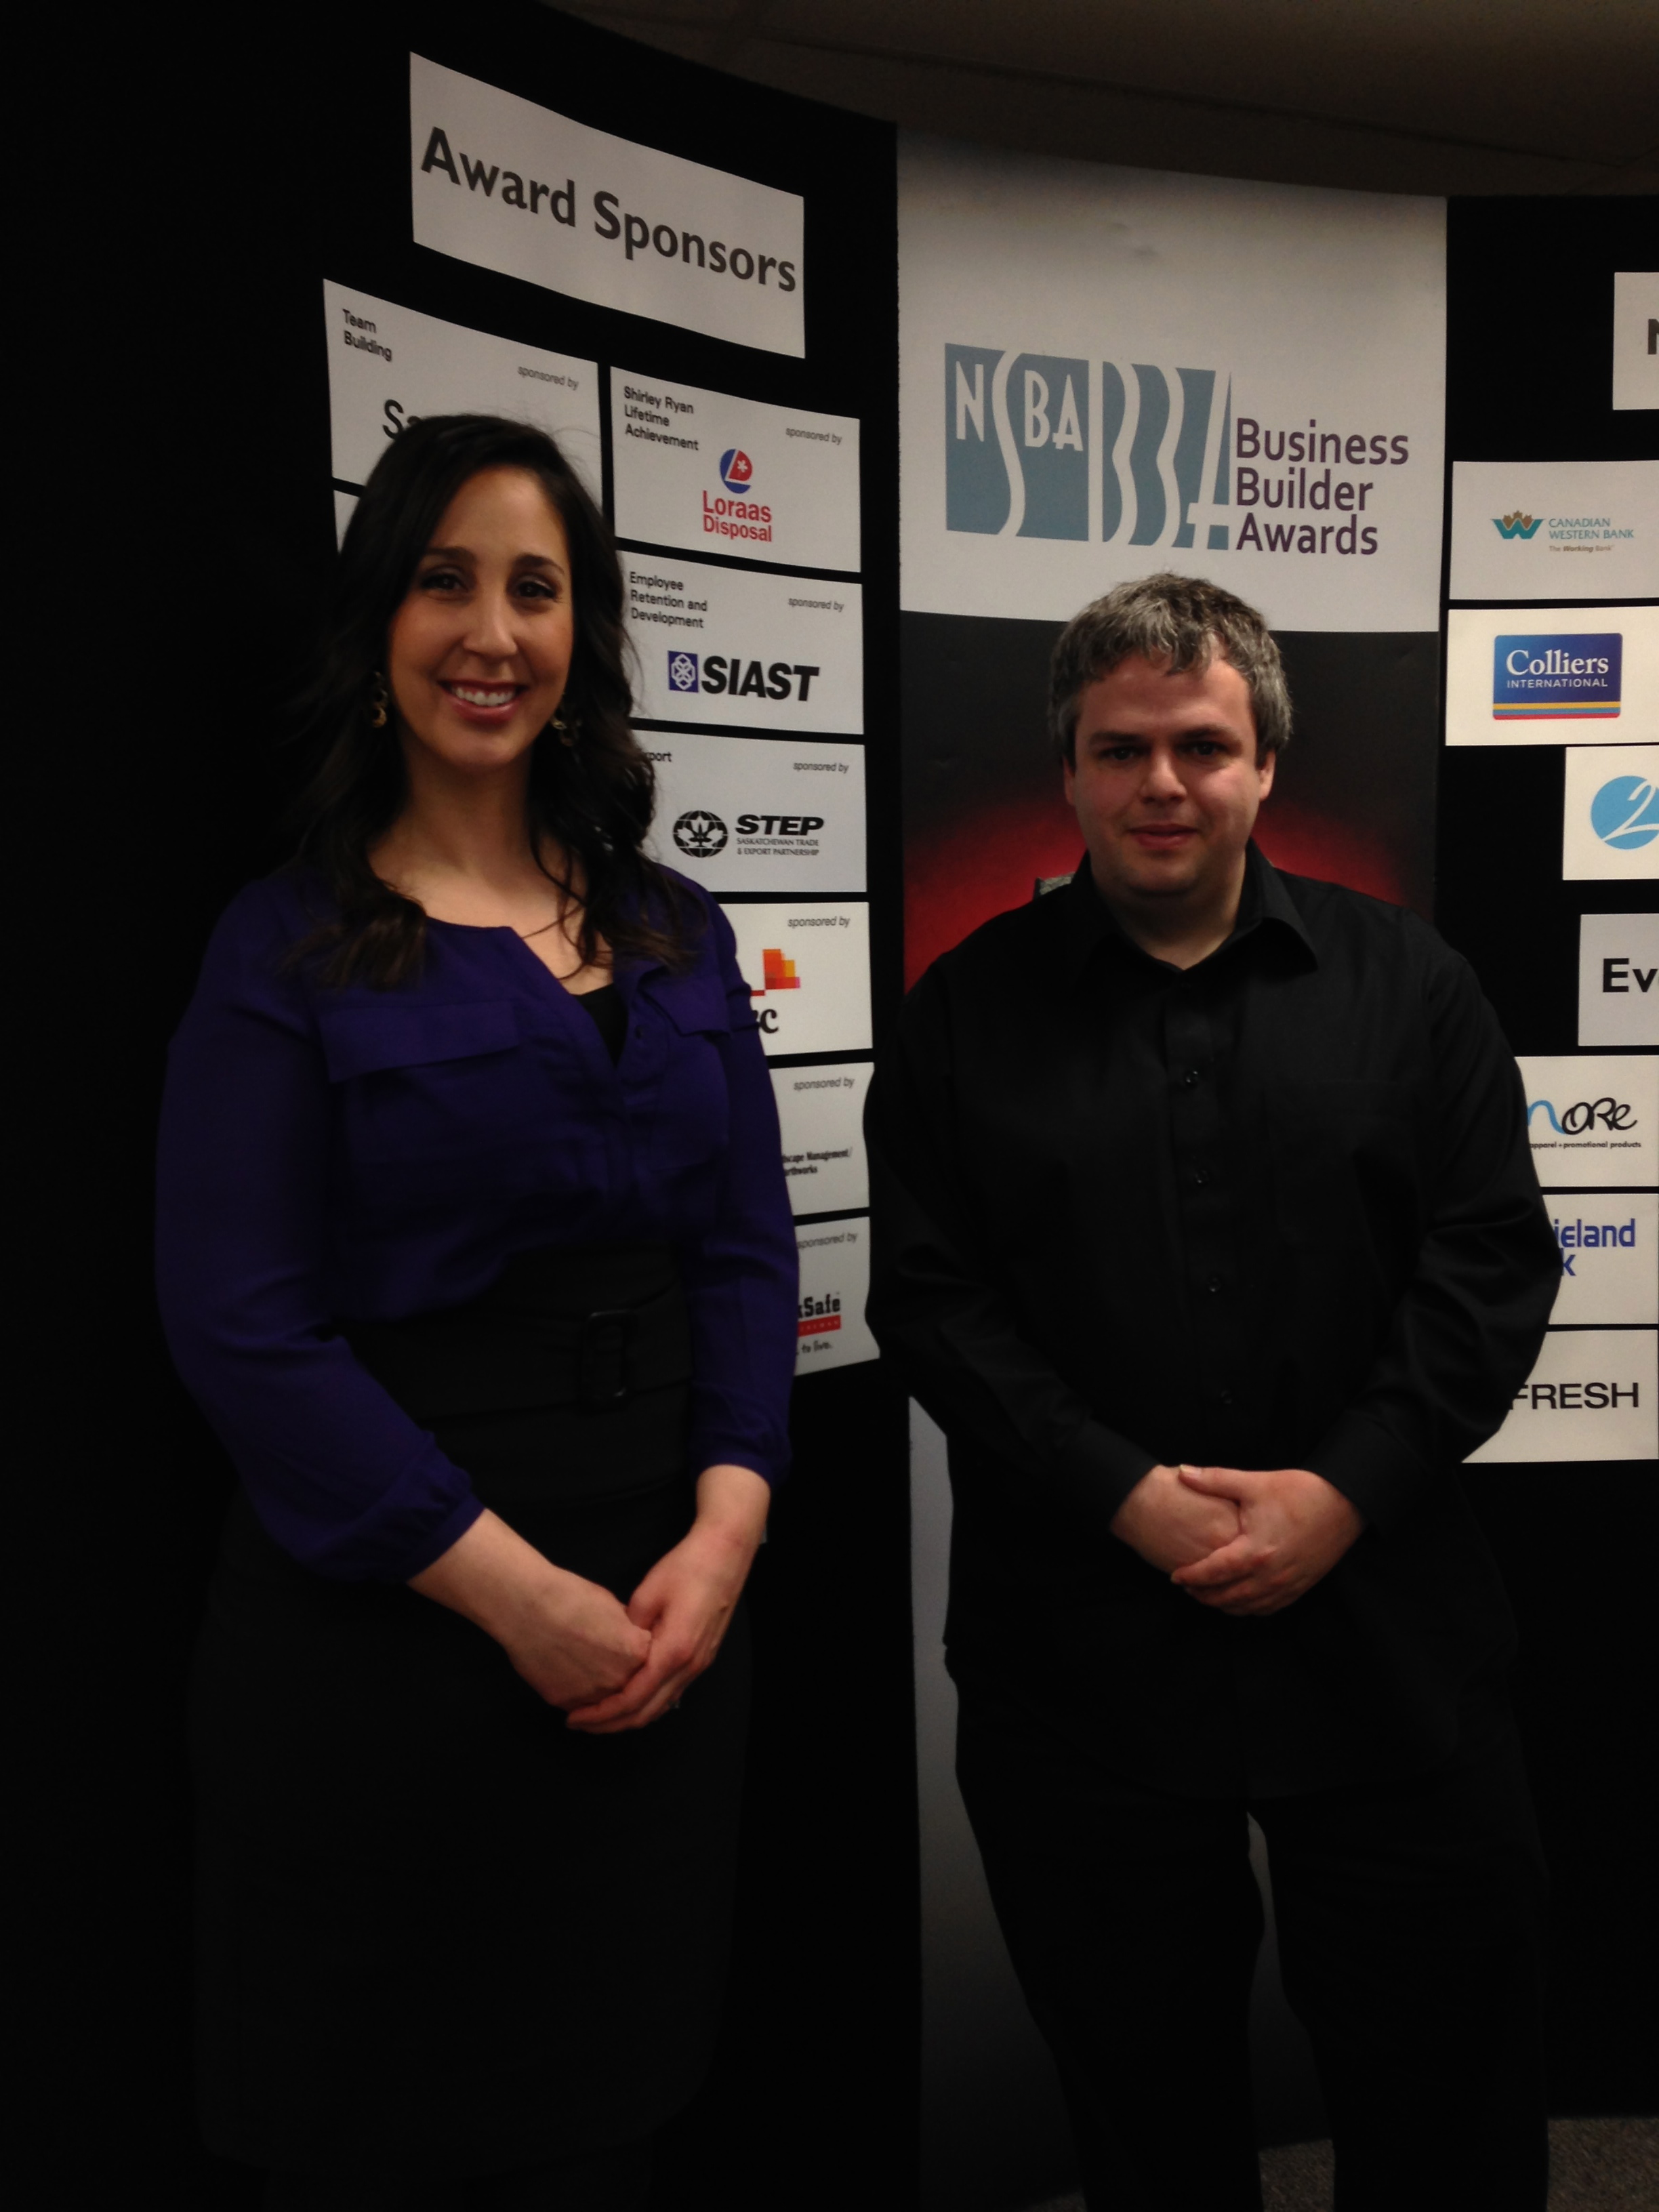 Chad Jones and I at the NSBA BBA Press Conference to announce the finalists